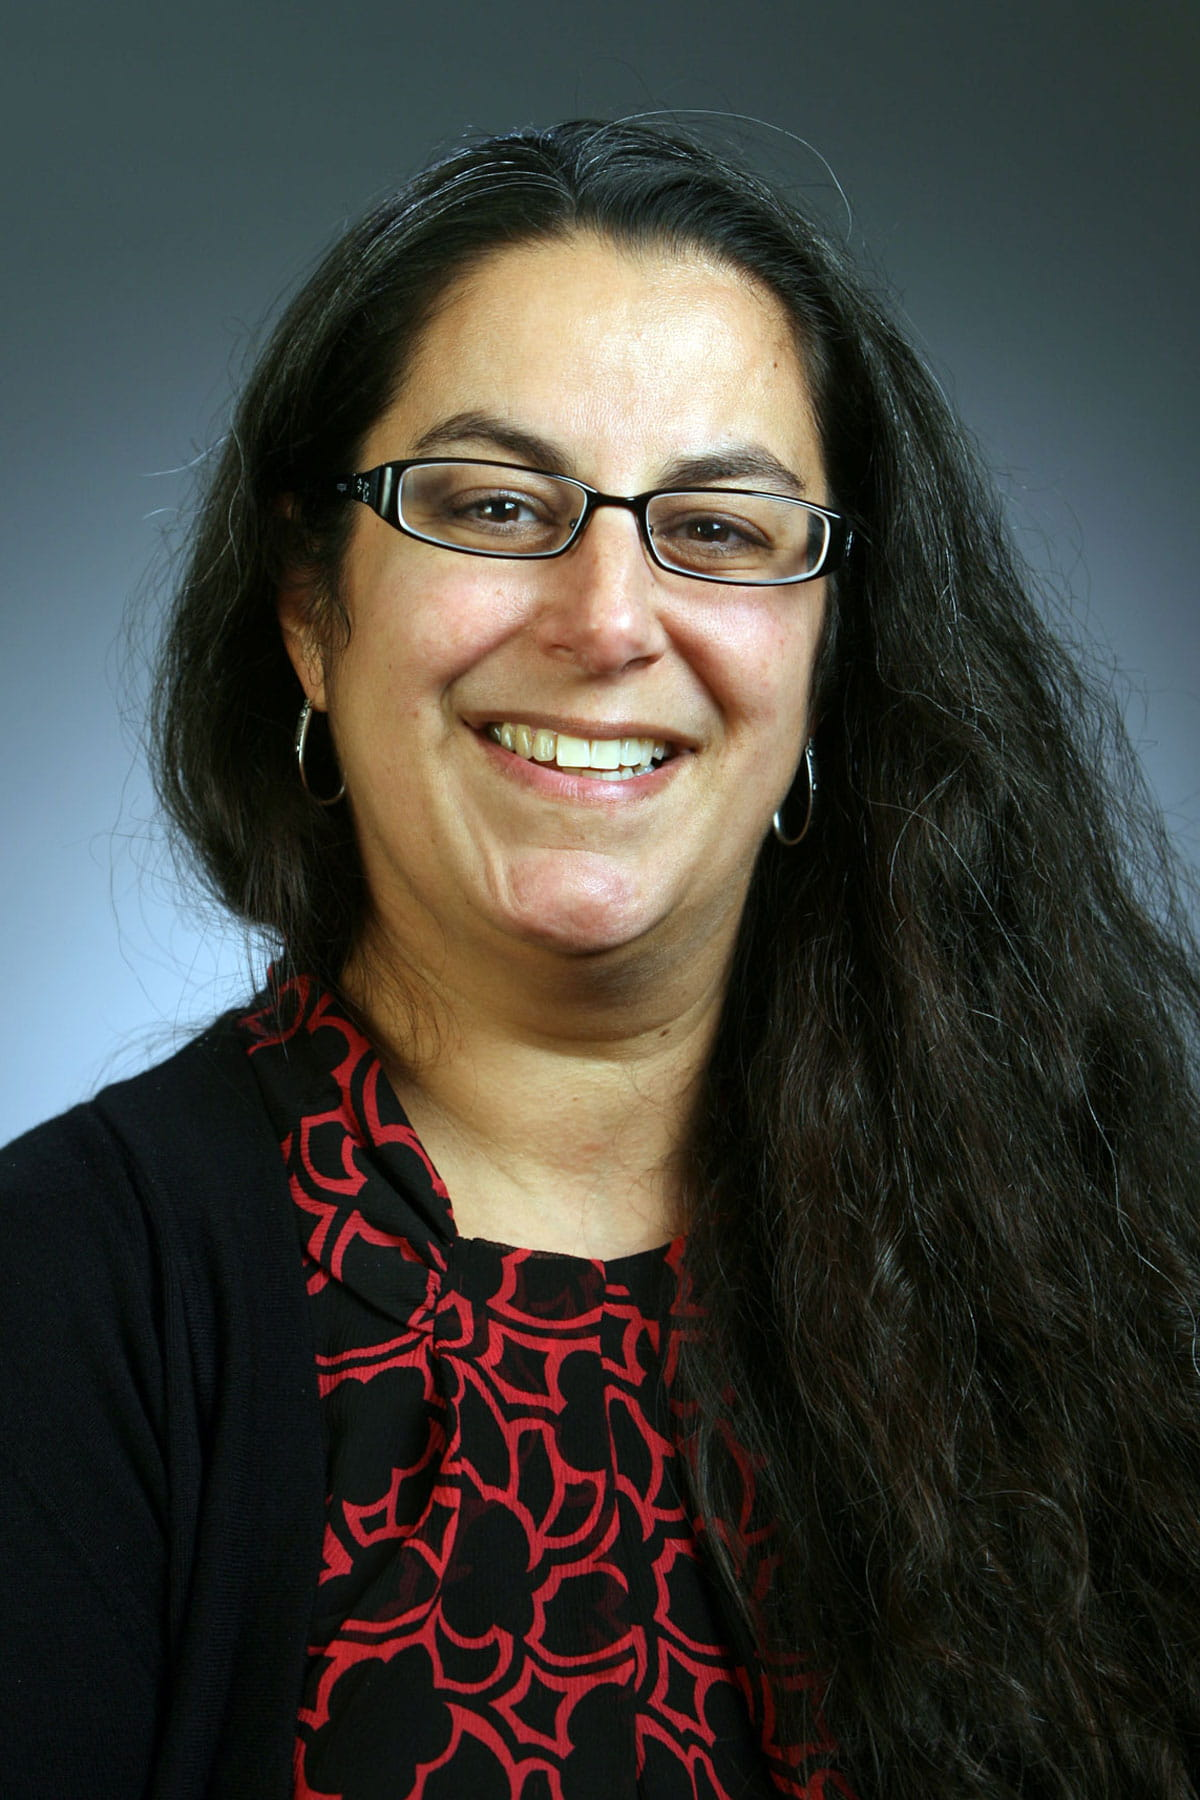 A photo of Mona Mansour.